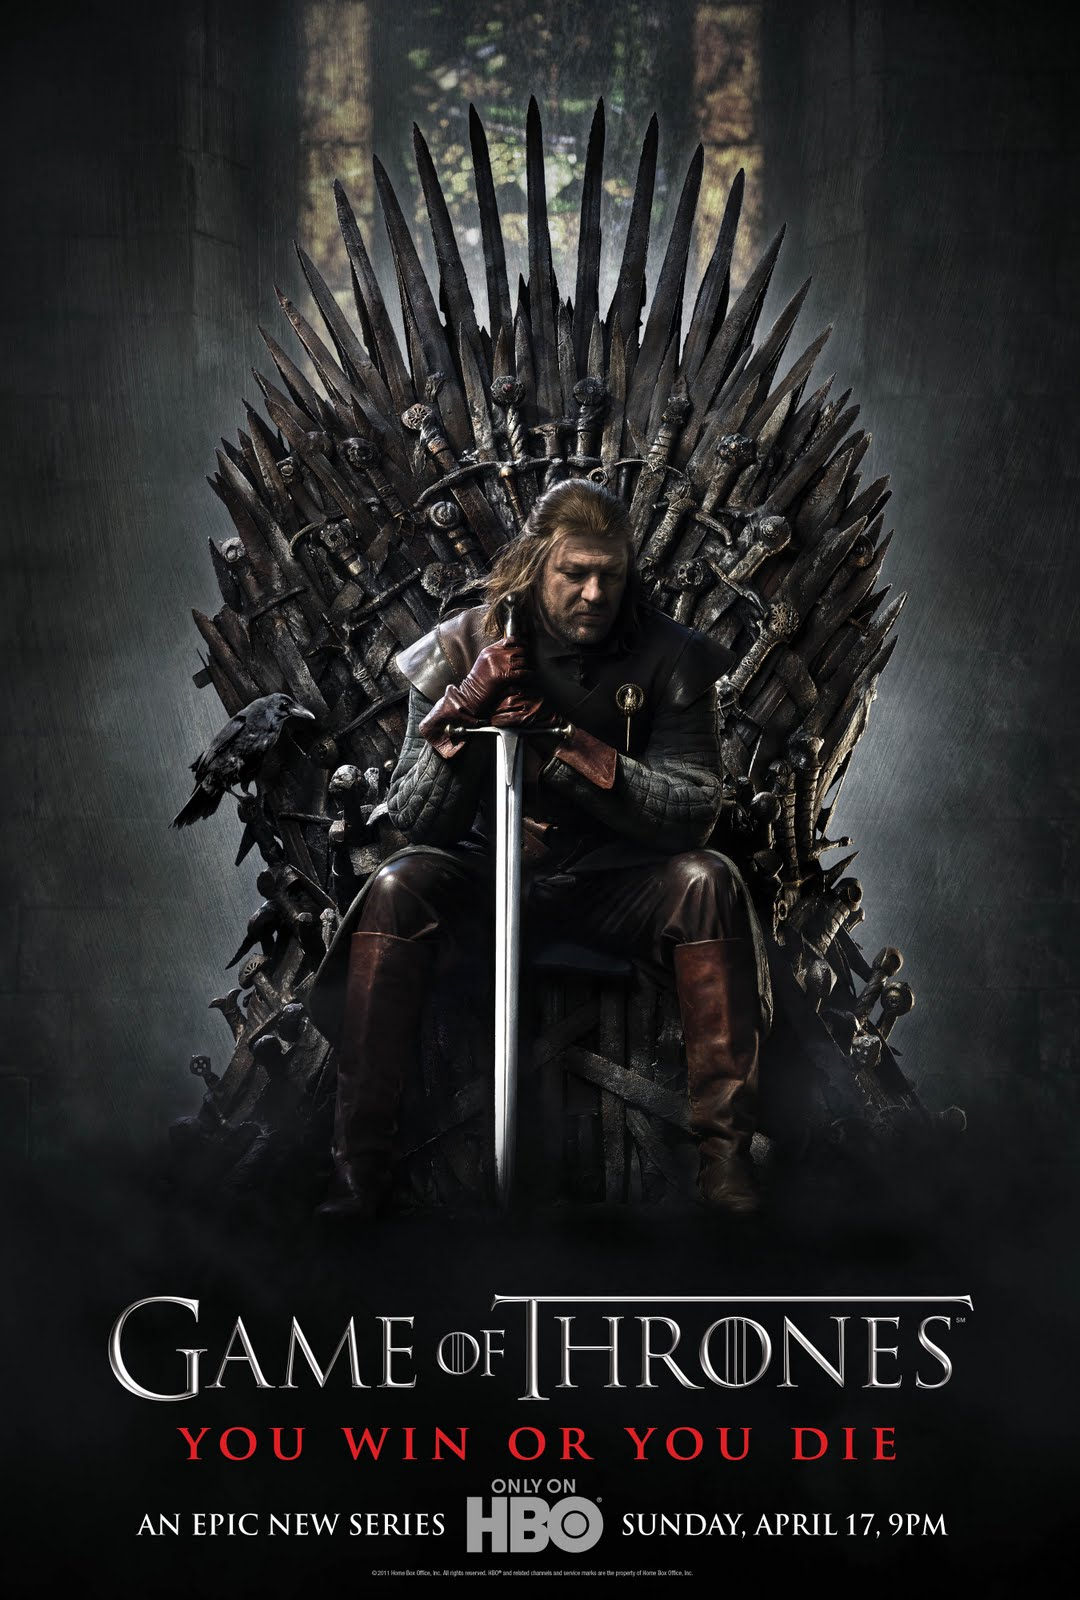 http://4.bp.blogspot.com/-XaIjph6ipv4/TbRTCeR47WI/AAAAAAAABvk/WNOCZZHUi-A/s1600/o-official-poster-for-hbo-s-fantasy-series-game-of-thrones.jpg